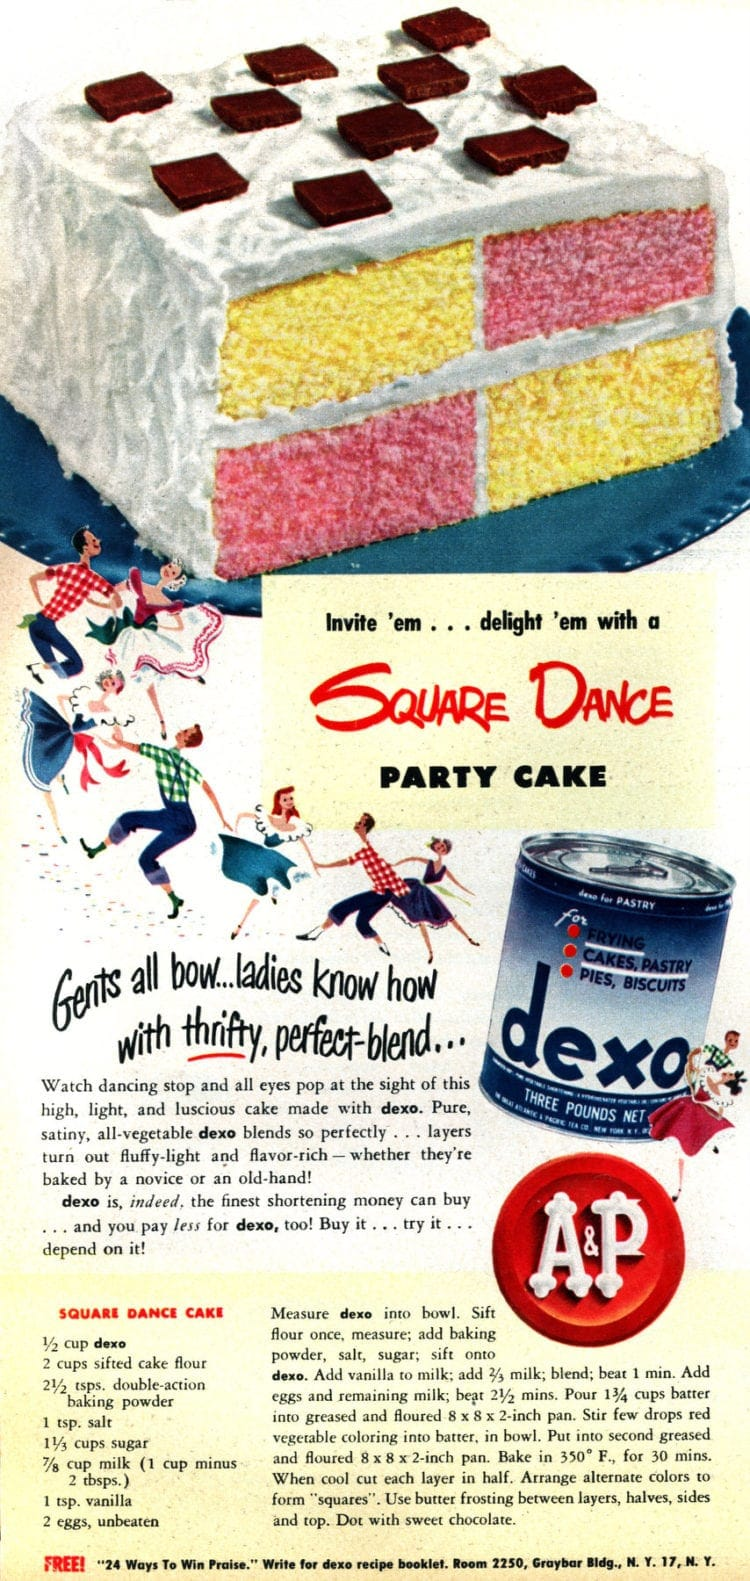 Square dance party cake (1950)